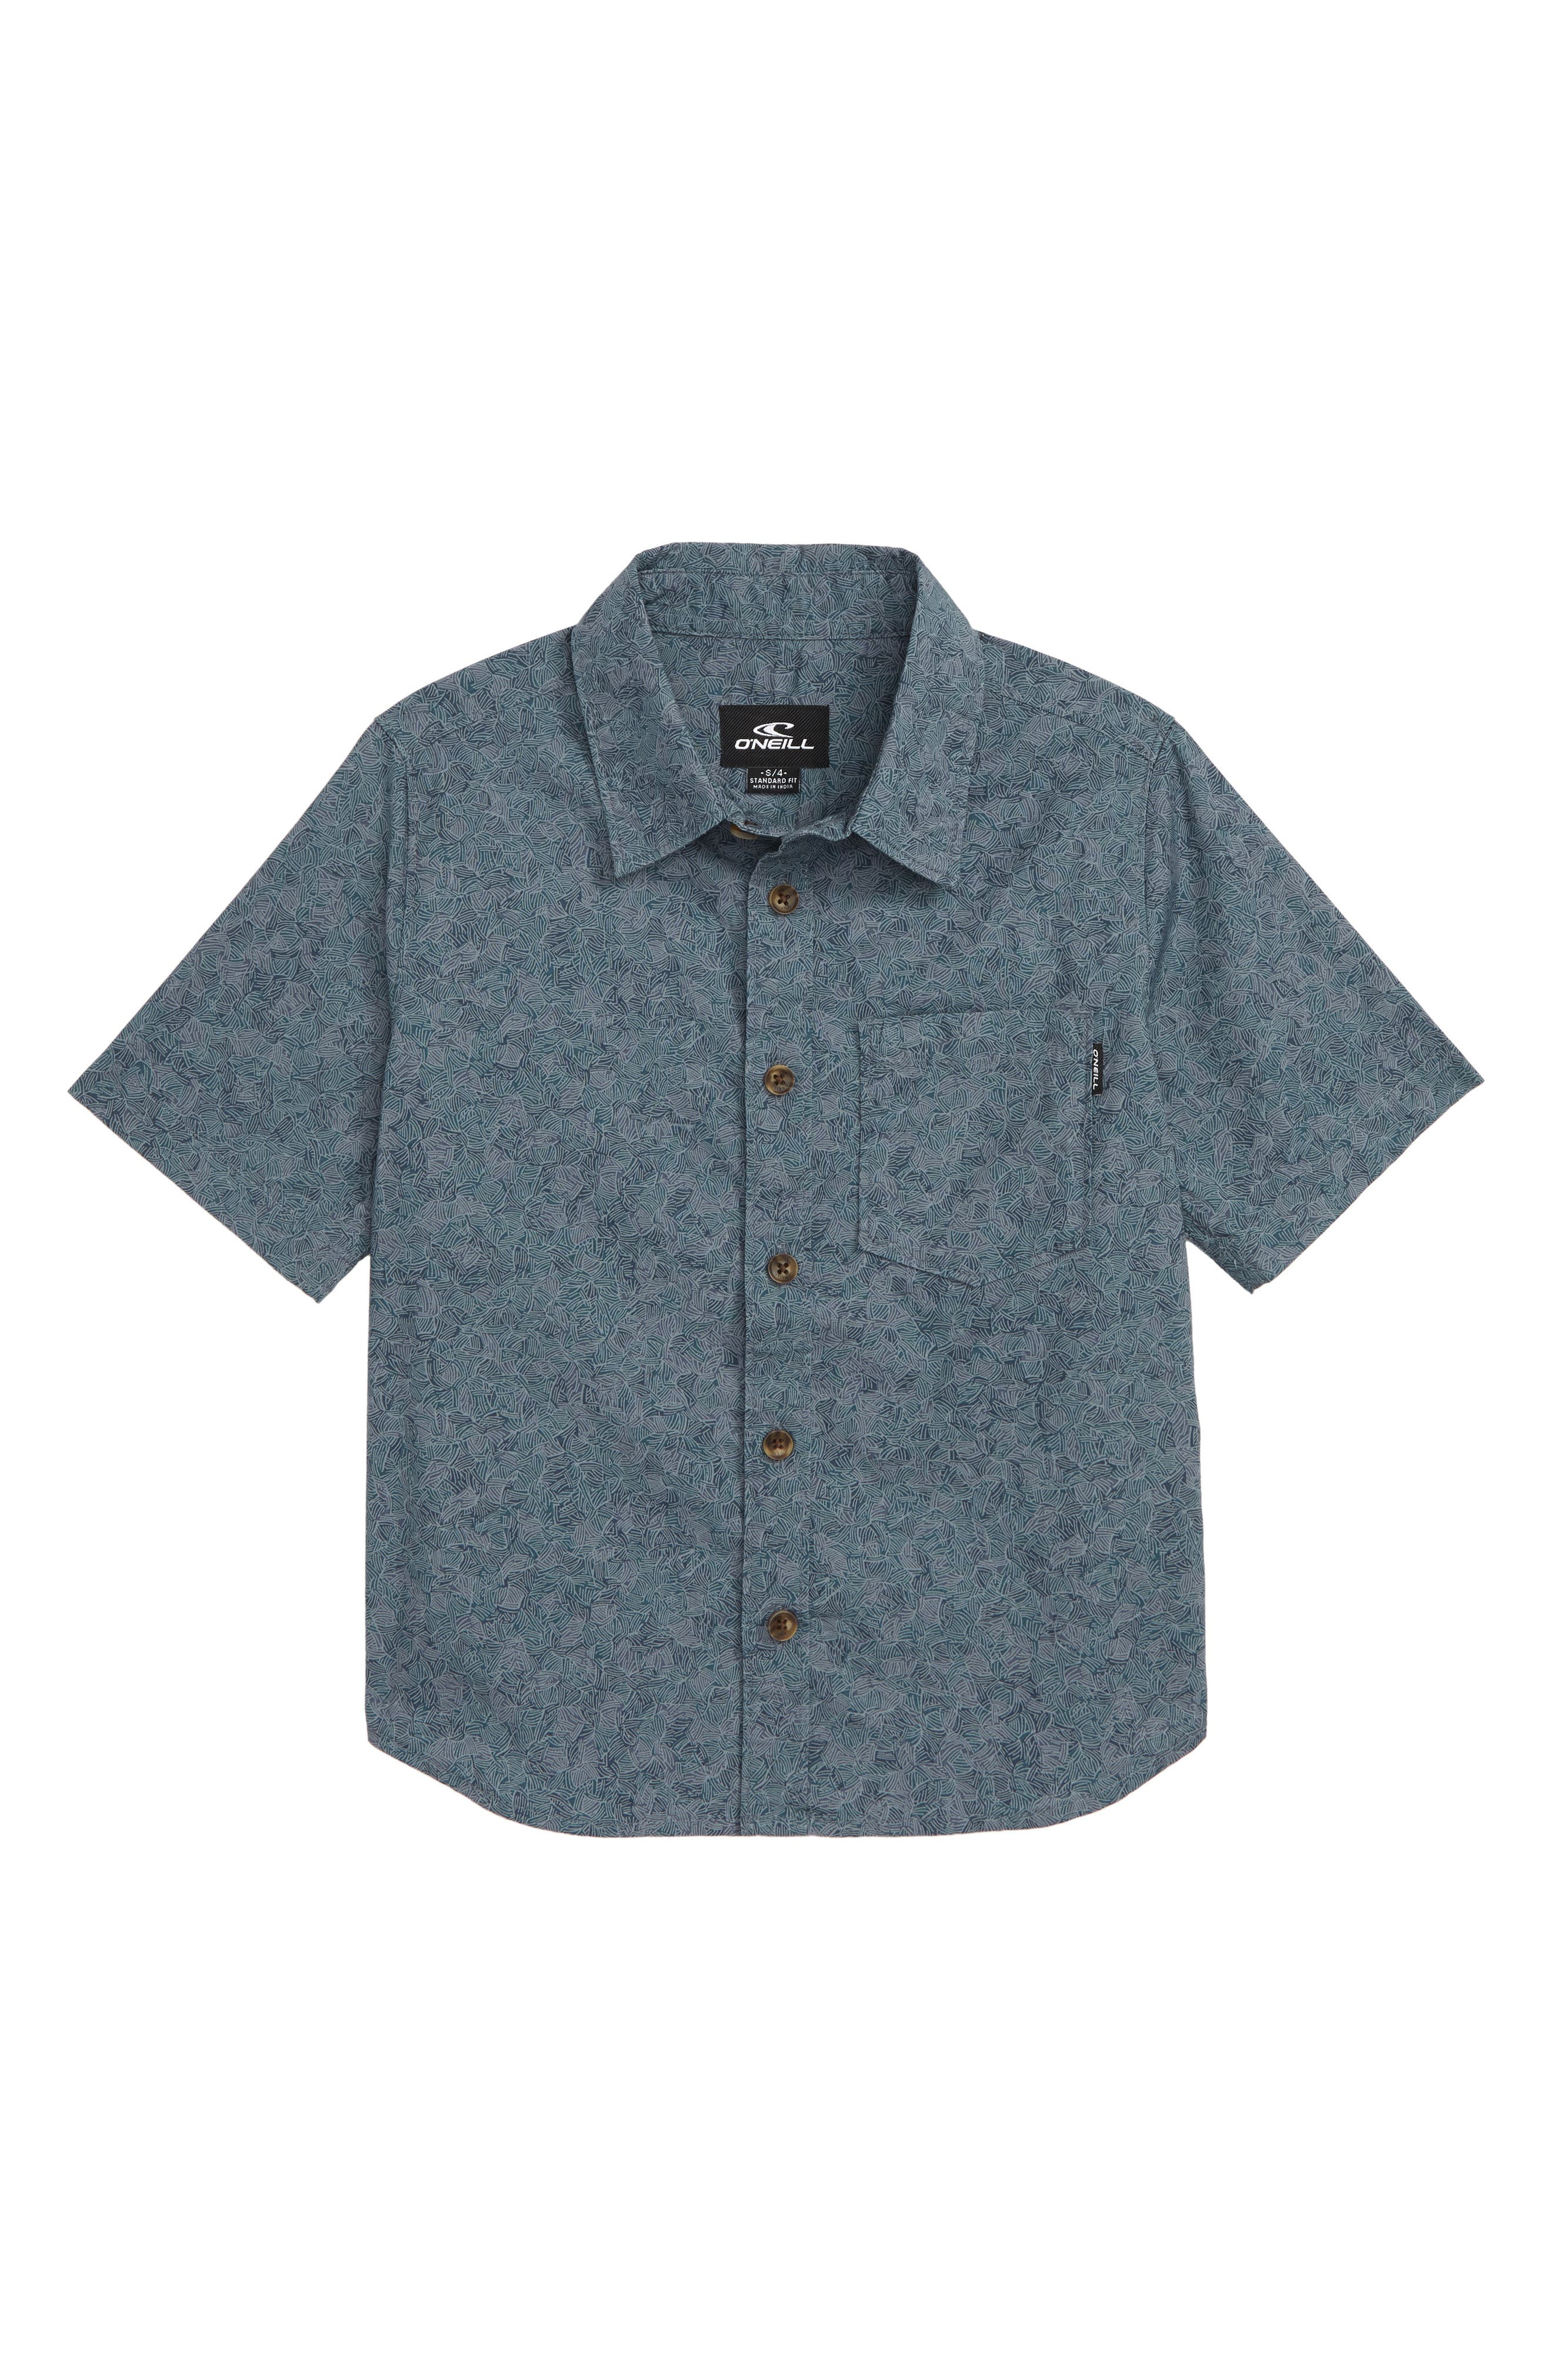 Structure Woven Shirt,                             Main thumbnail 1, color,                             DARK BLUE